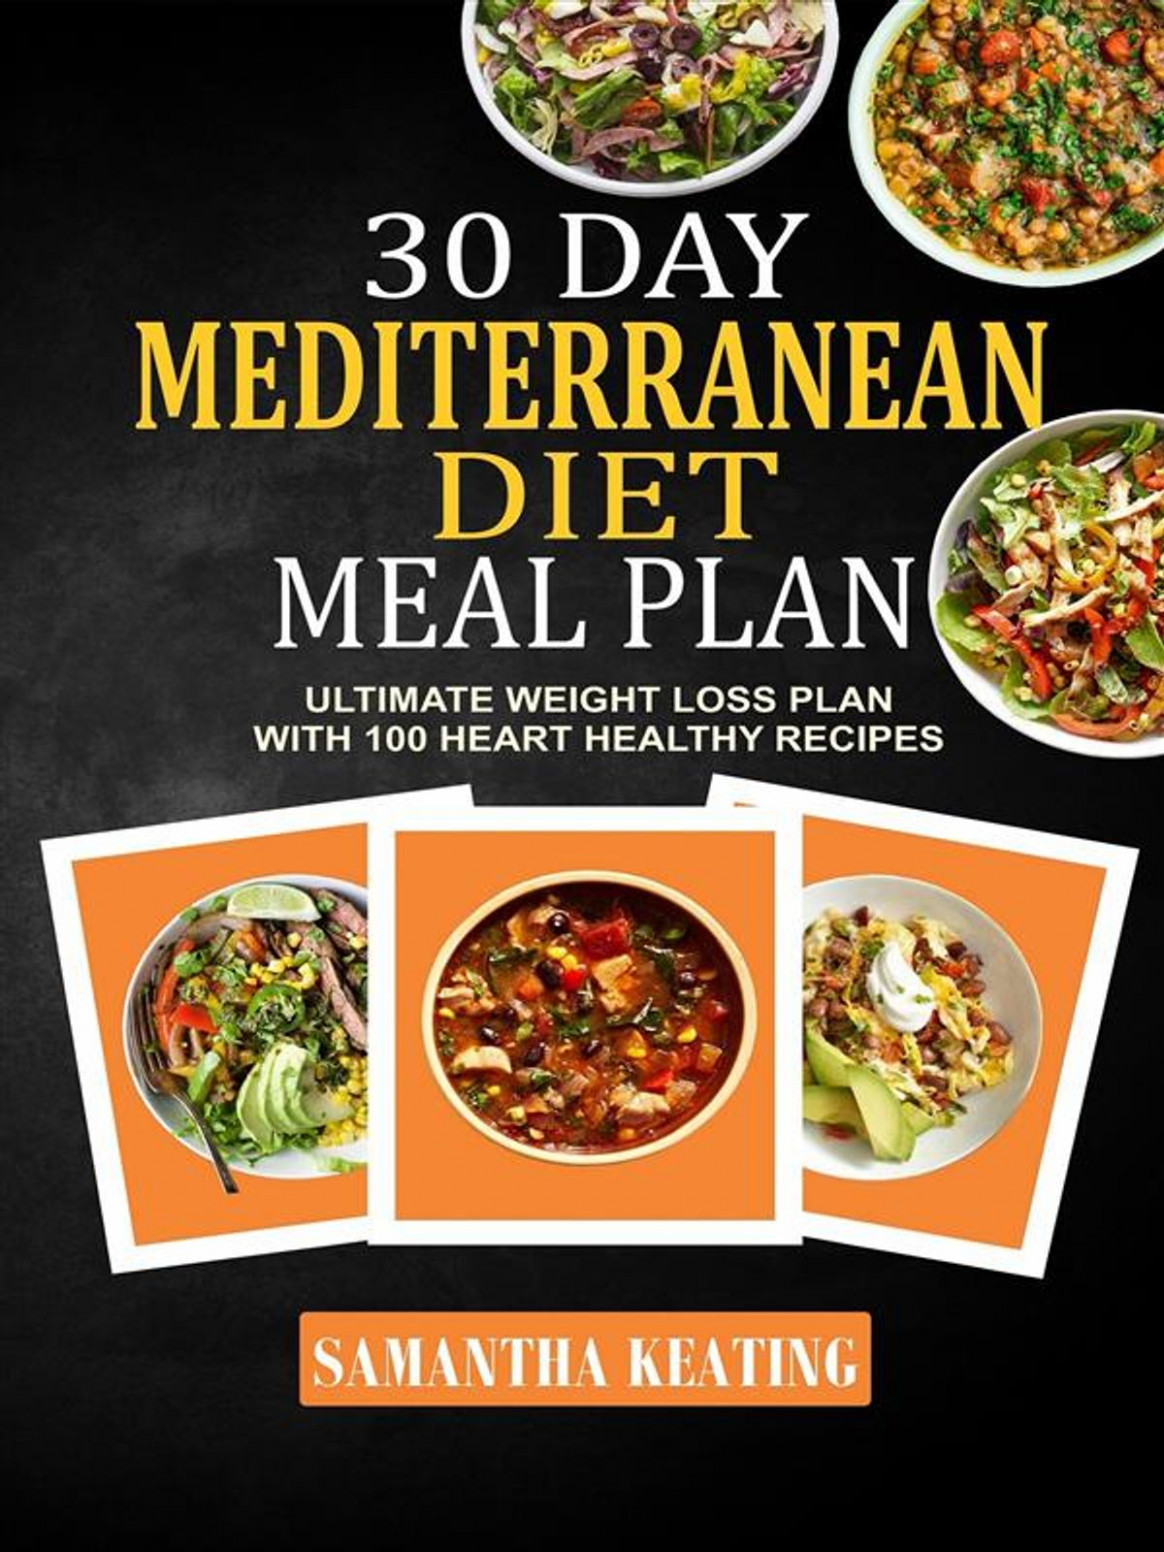 12 Day Mediterranean Diet Meal Plan: Ultimate Weight Loss Plan With 12  Heart Healthy Recipes ebook by Samantha Keating - Rakuten Kobo - recipes heart healthy